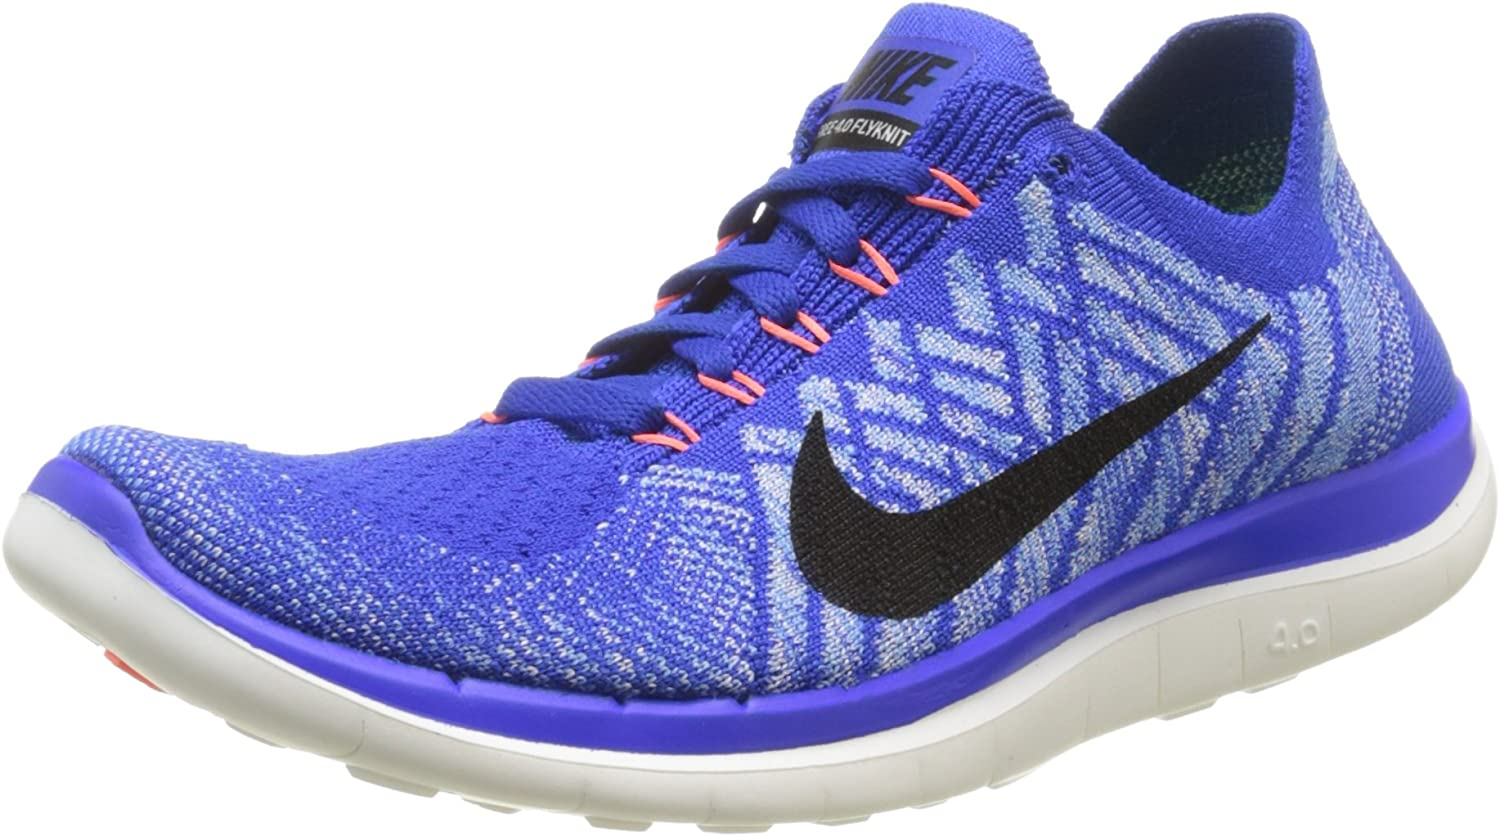 Álbum de graduación Con otras bandas Máquina de escribir  Nike Free 4.0 Flyknit, Women's Training Running Shoes, Blue (Racer  Blue/Black-University Blue-Hyper Orange), 3 UK: Amazon.co.uk: Shoes & Bags